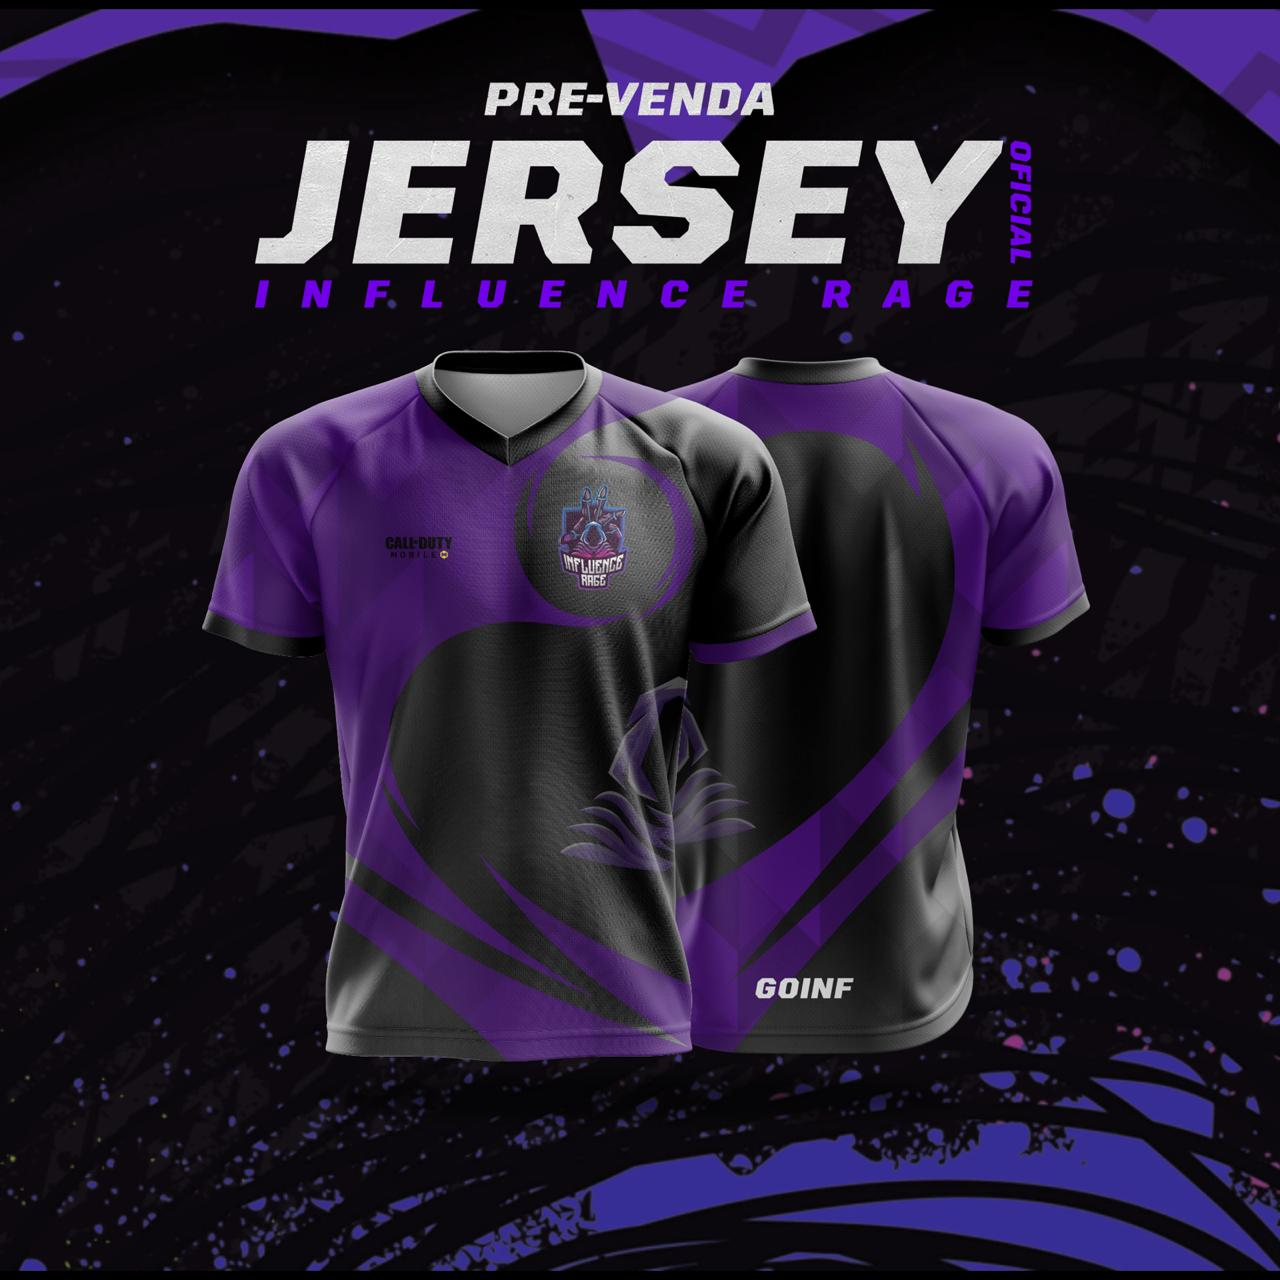 Jersey Influence Rage - Oficial (CALL OF DUTY - MOBILE)